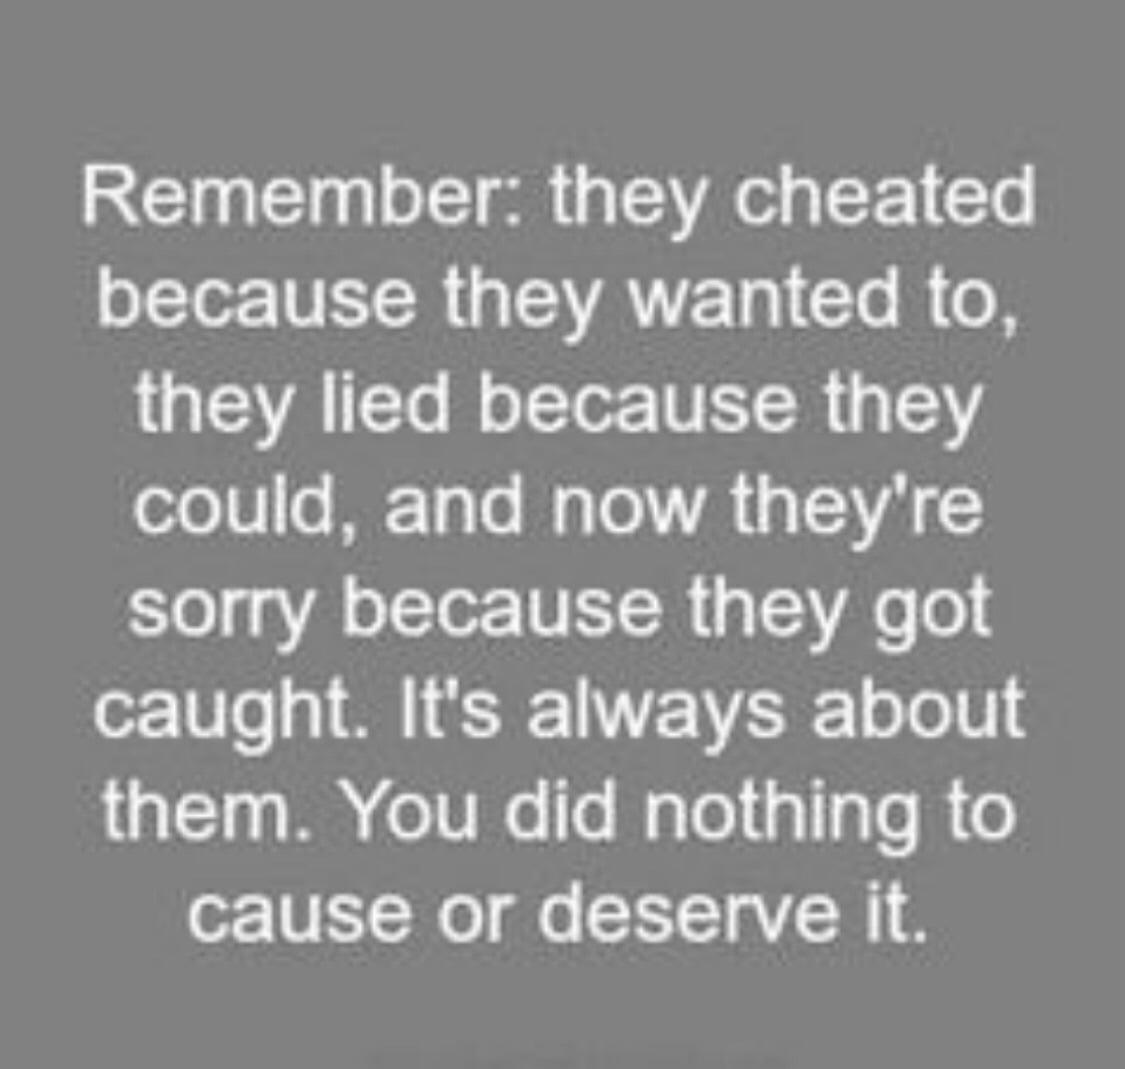 42 images about Cheating on We Heart It | See more about ...